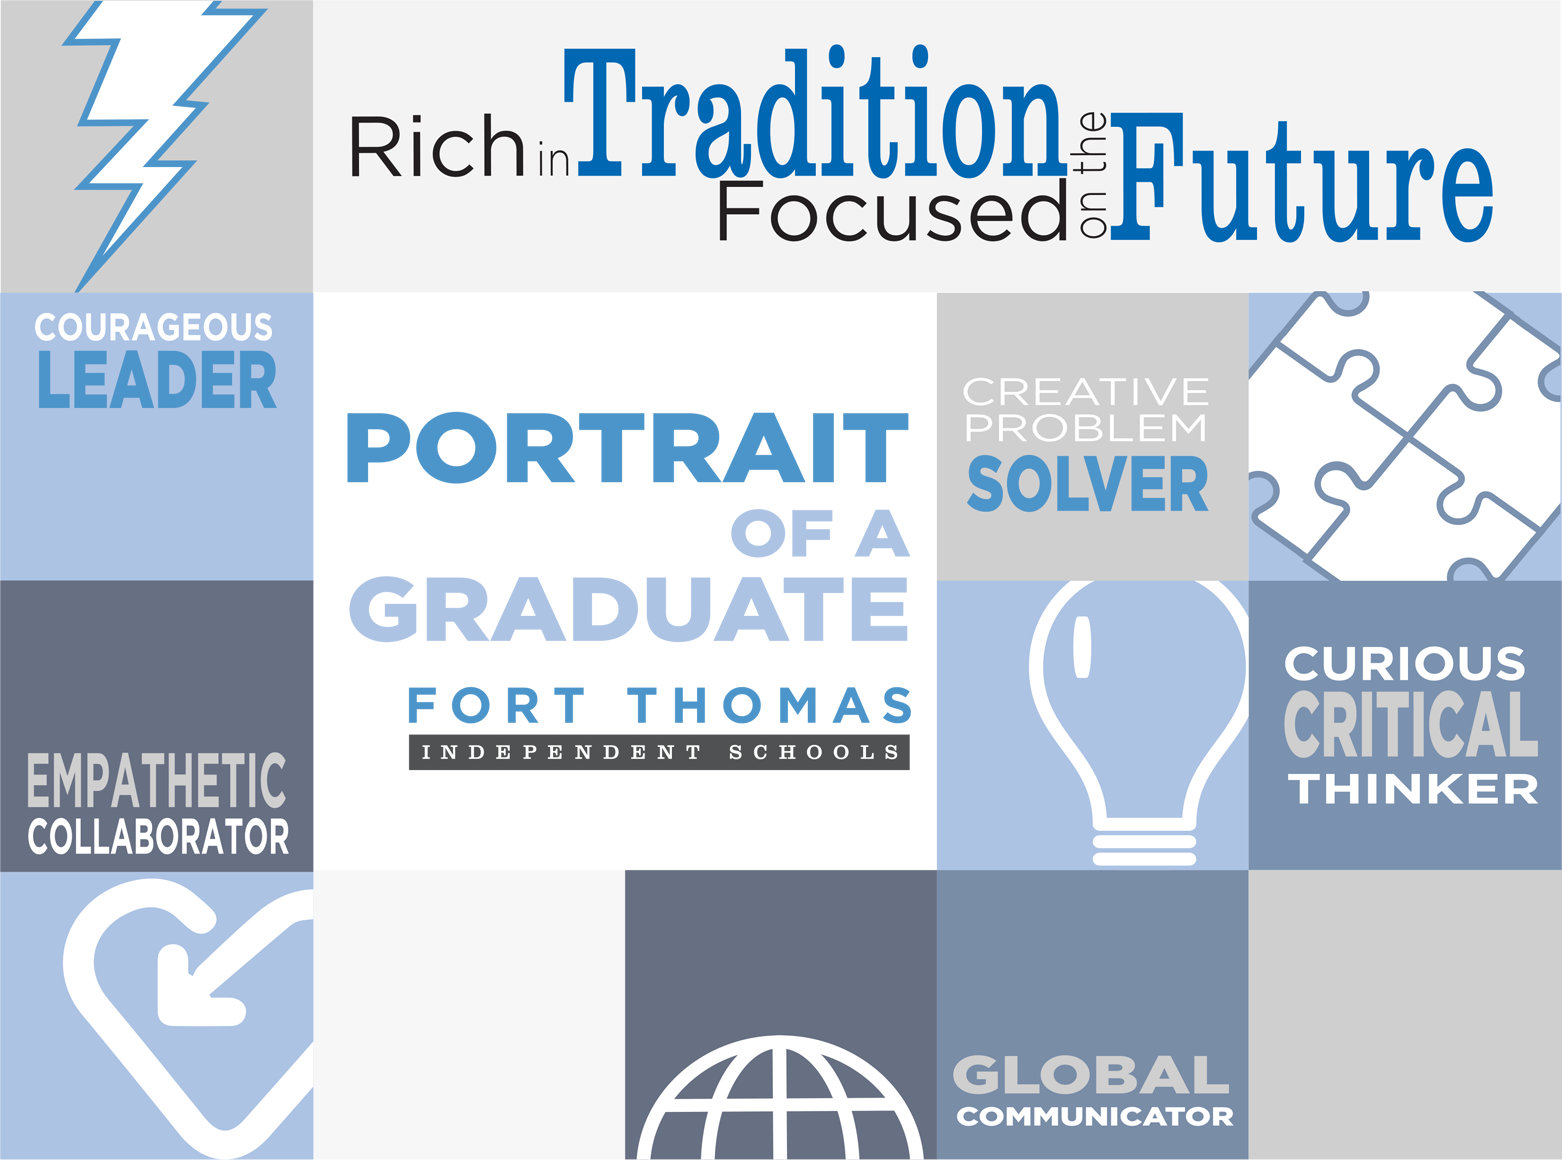 rich in tradition focused on the future courageous leader portrait of a graduate fort thomas independent schools creative problem solver curious critical thinker empathetic collaborator global communicator